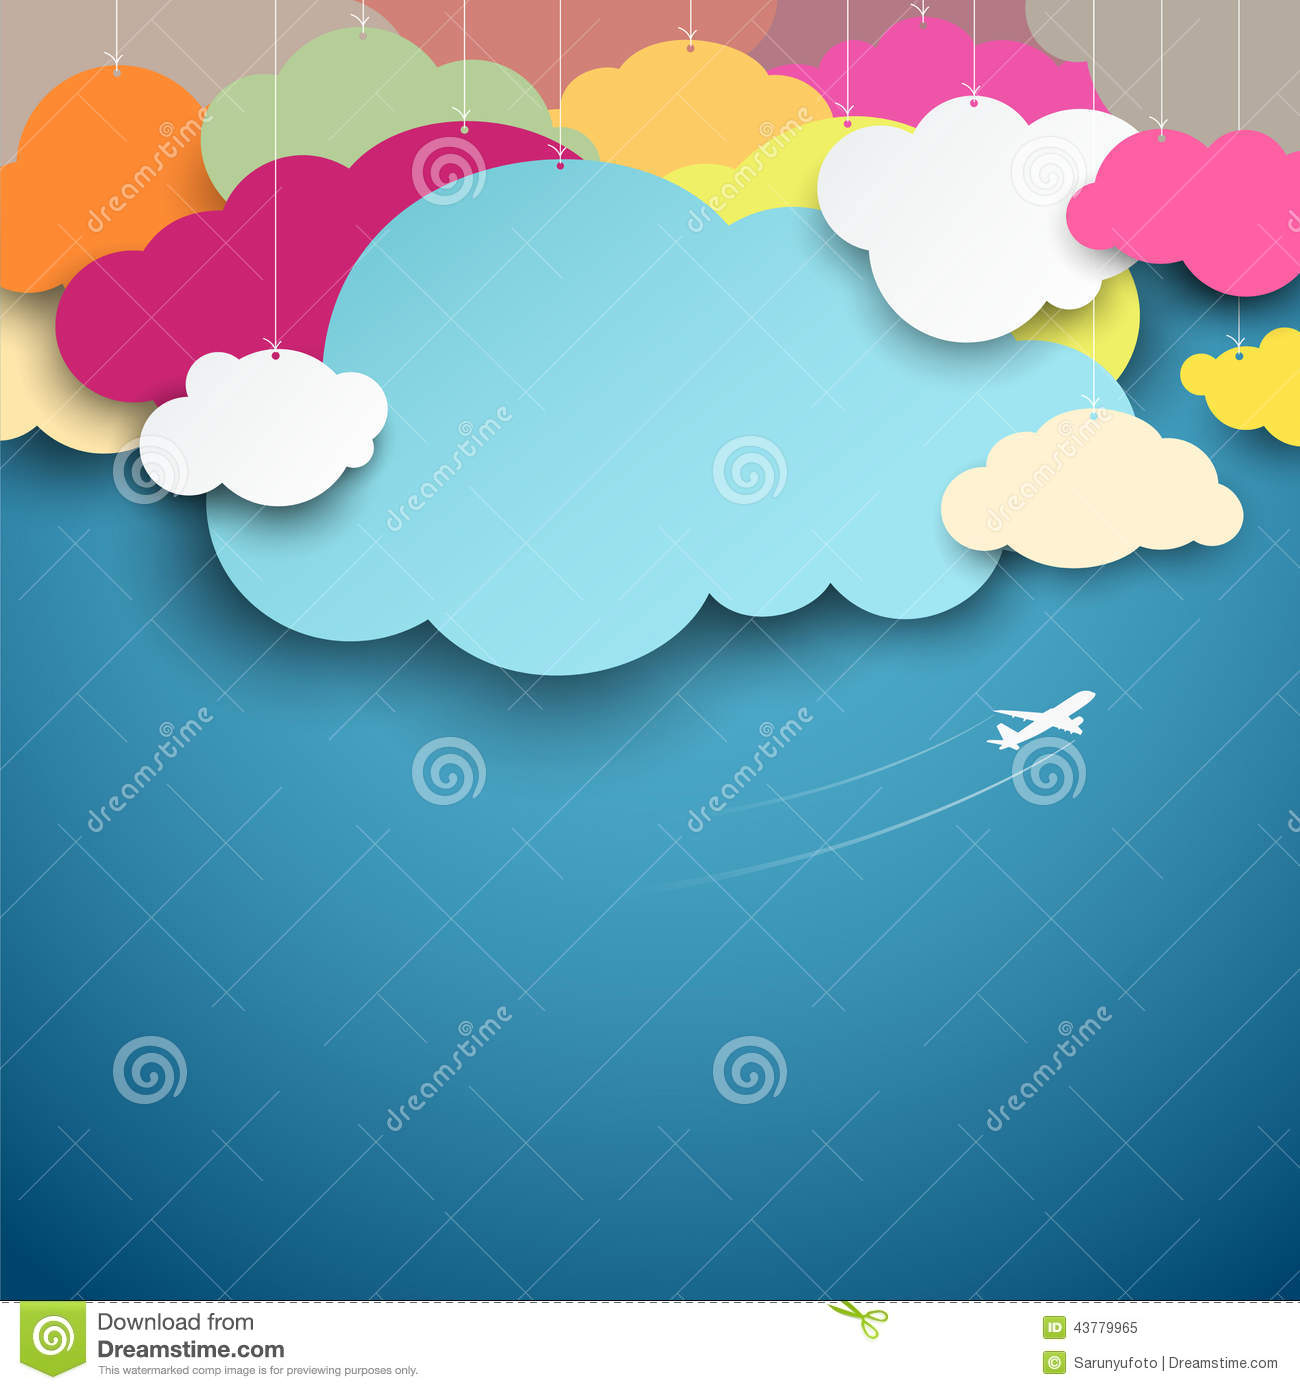 Colorful paper cut clouds shape design stock vector for How to make a paper cloud